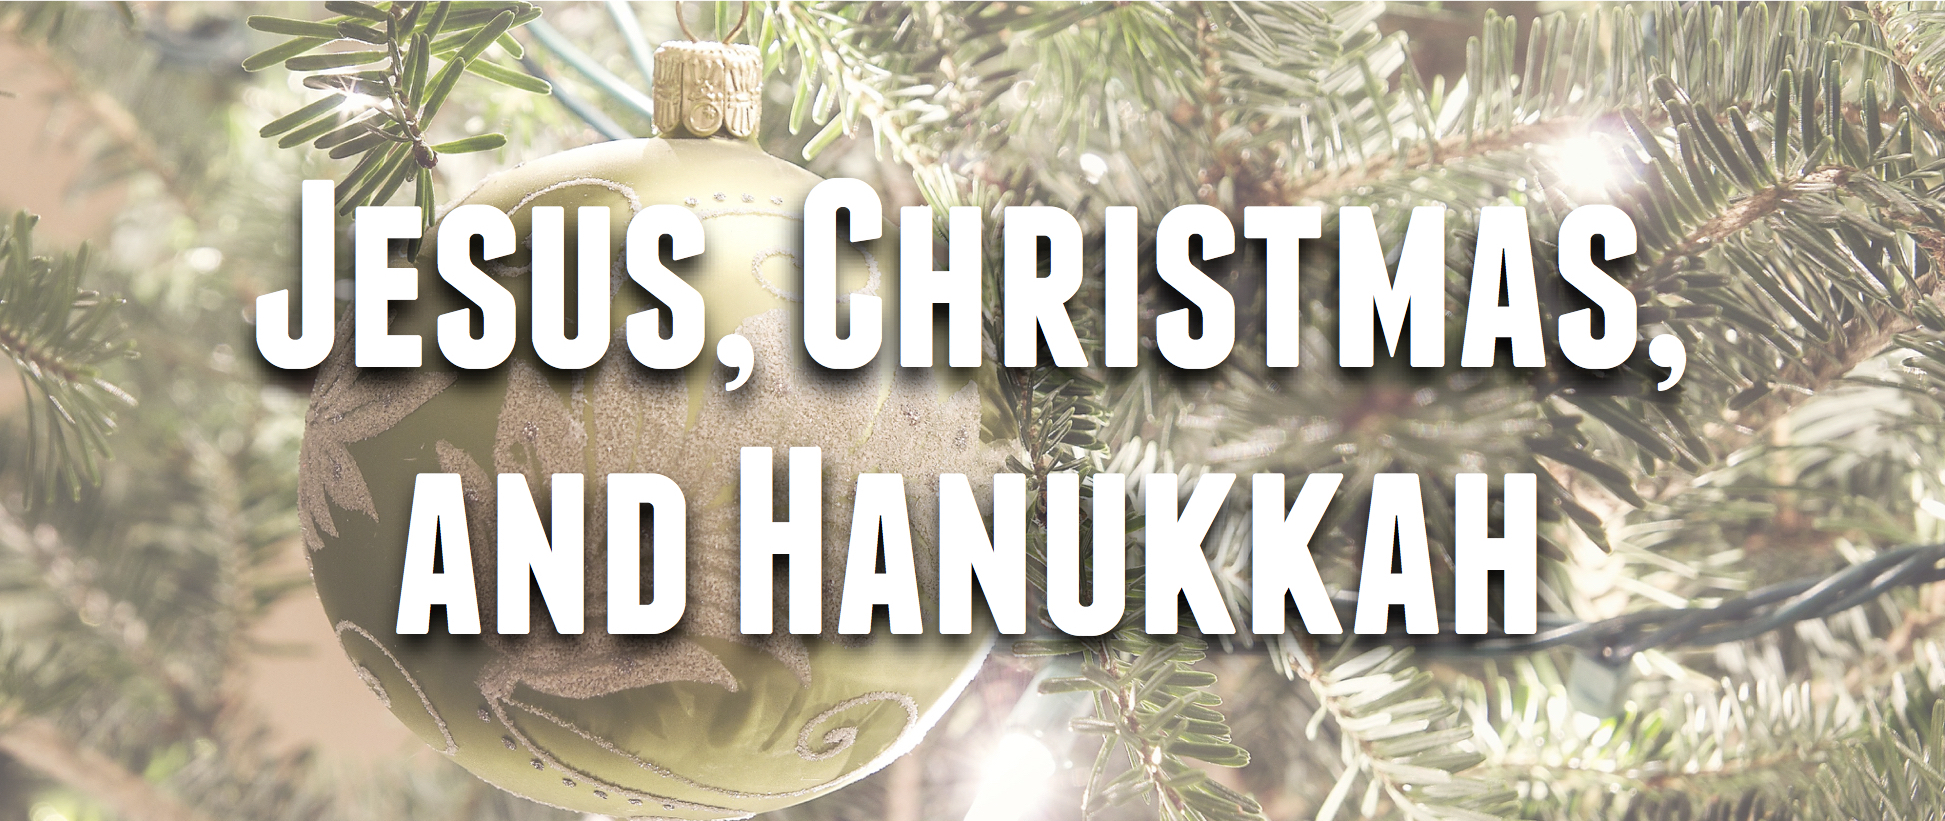 Jesus Christmas And Hanukkah The Doc File